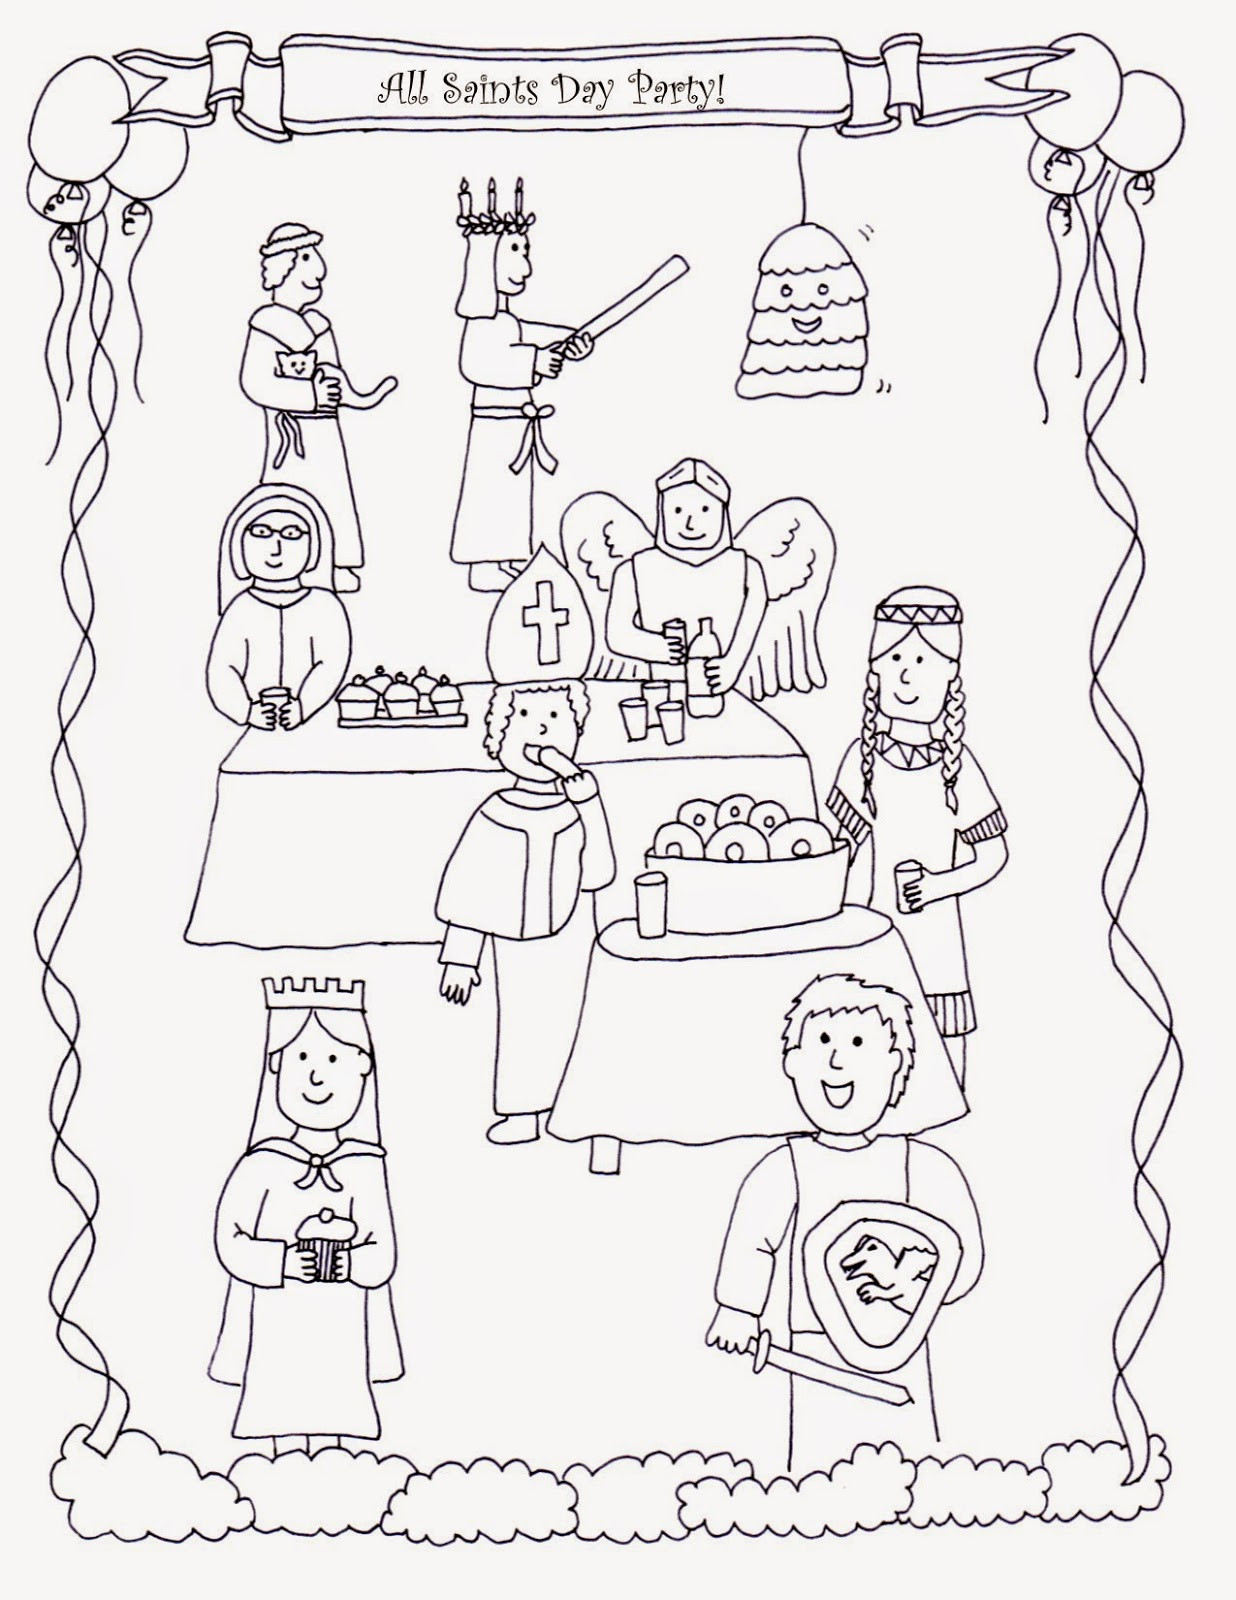 Free Coloring Pages For All Saints Day  Drawn2BCreative All Saints Day Coloring Page